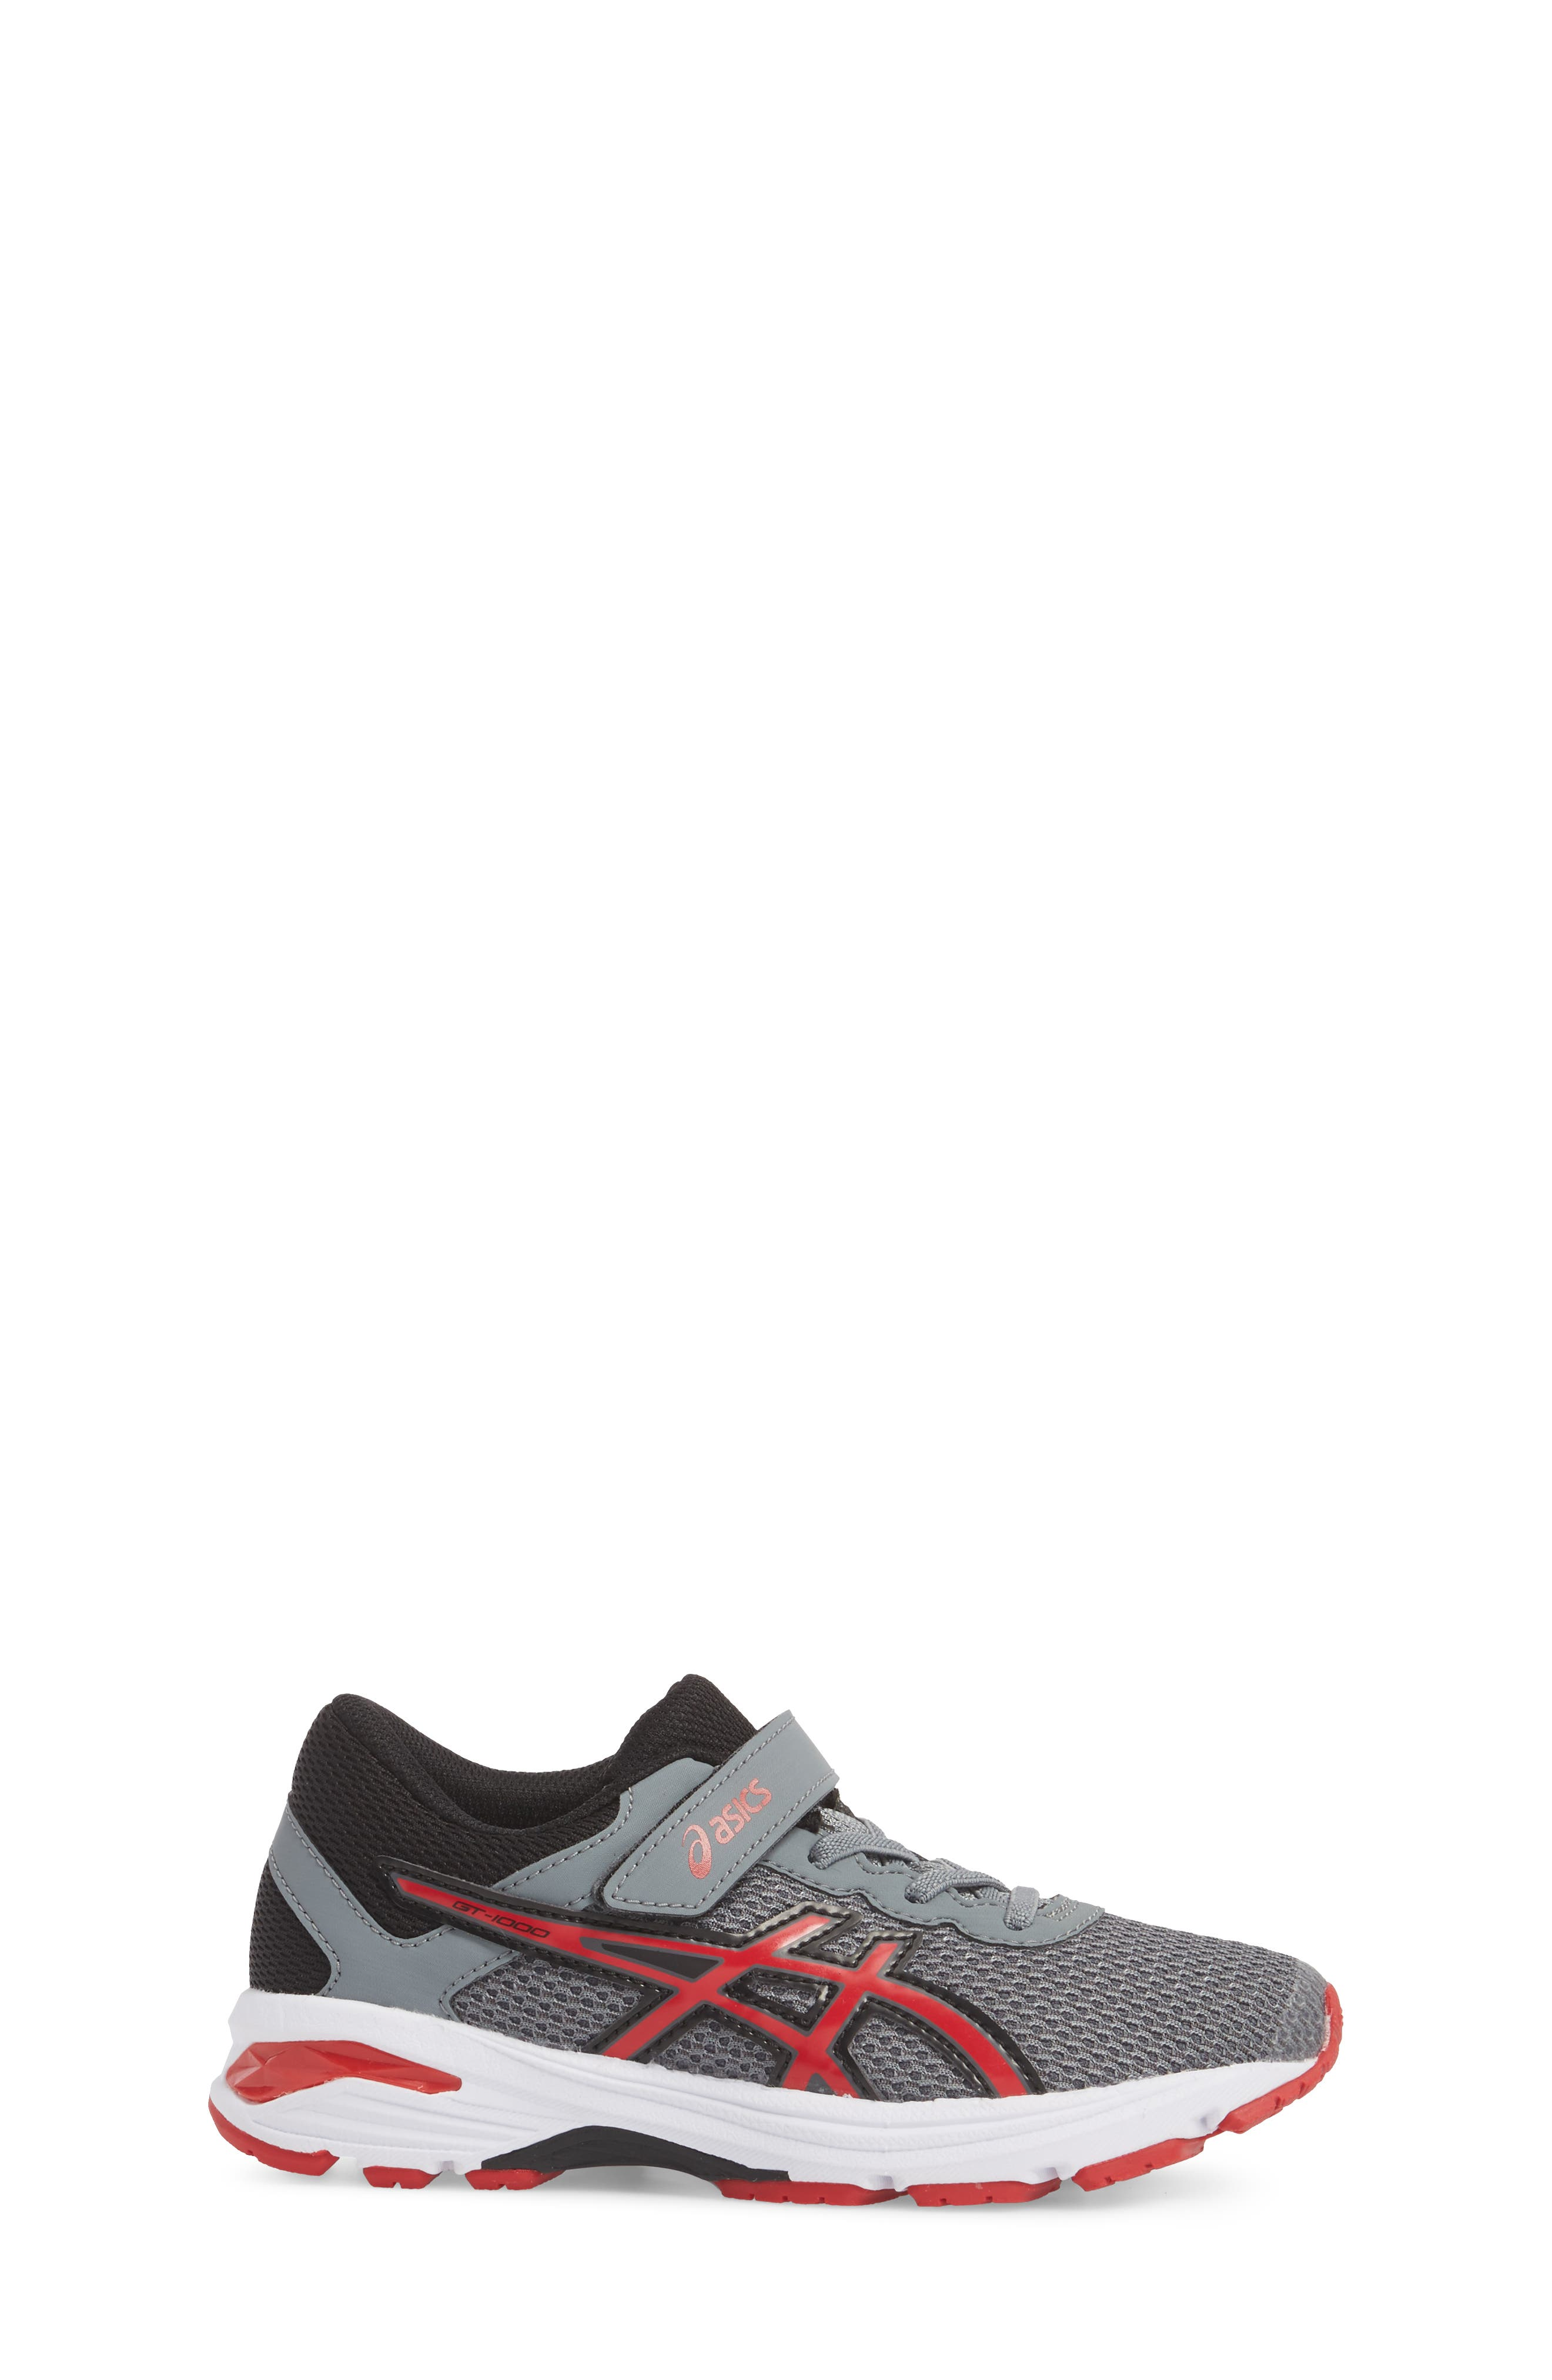 Asics GT-1000<sup>™</sup> 6 PS Sneaker,                             Alternate thumbnail 3, color,                             Stone Grey/ Classic Red/ Black